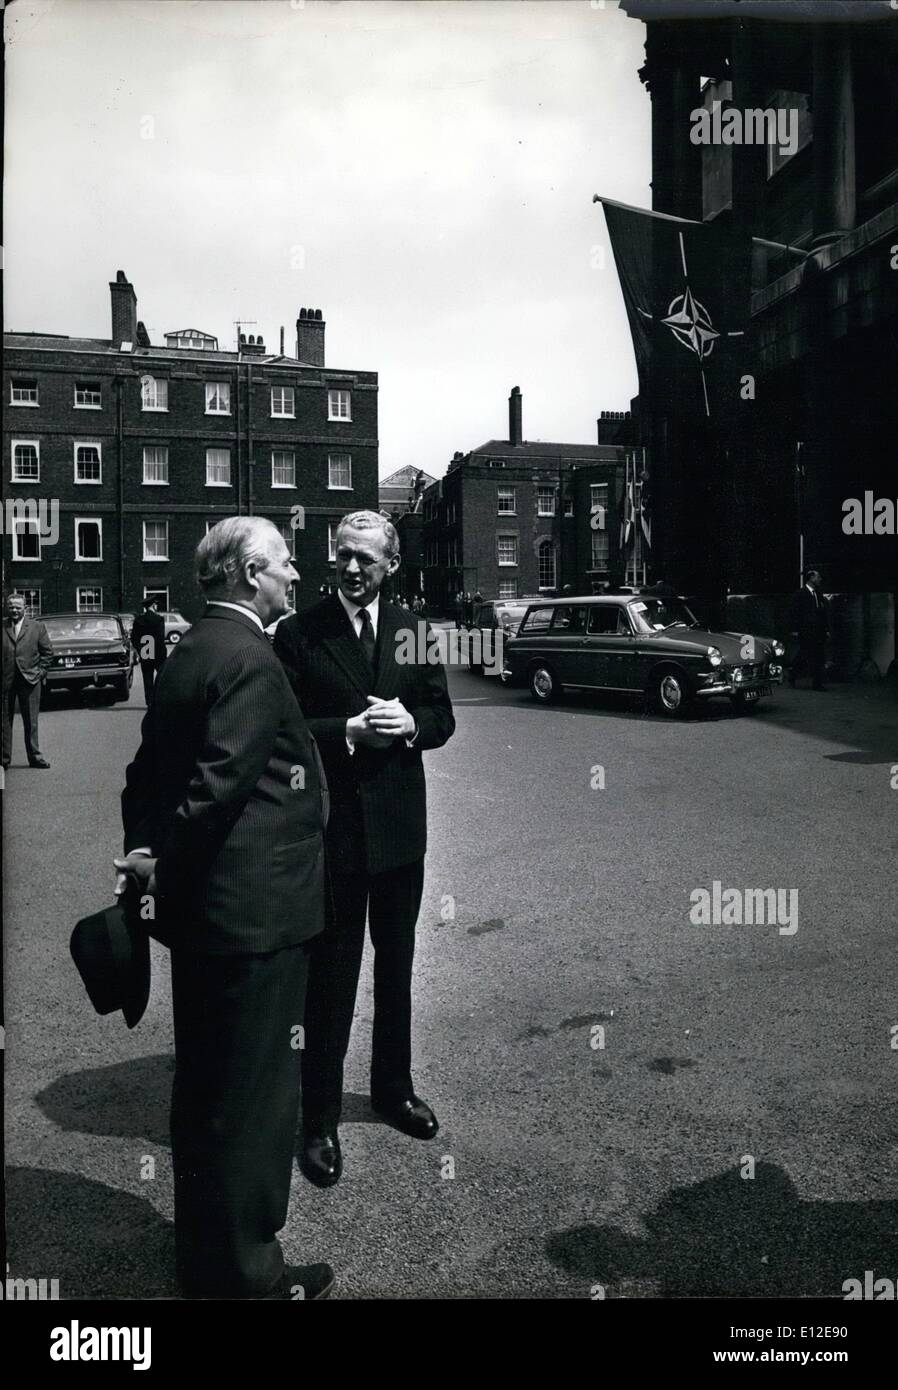 Dec. 15, 2011 - Nato Ministerial Meeting london, May 11-13, 1965 in Front Of Lancaster House: Before the Council meeting in Lancaster House the French Foreign minister, mr. Couve de Murville, talking to Mr. Salwyn Lloyd. - Stock Image